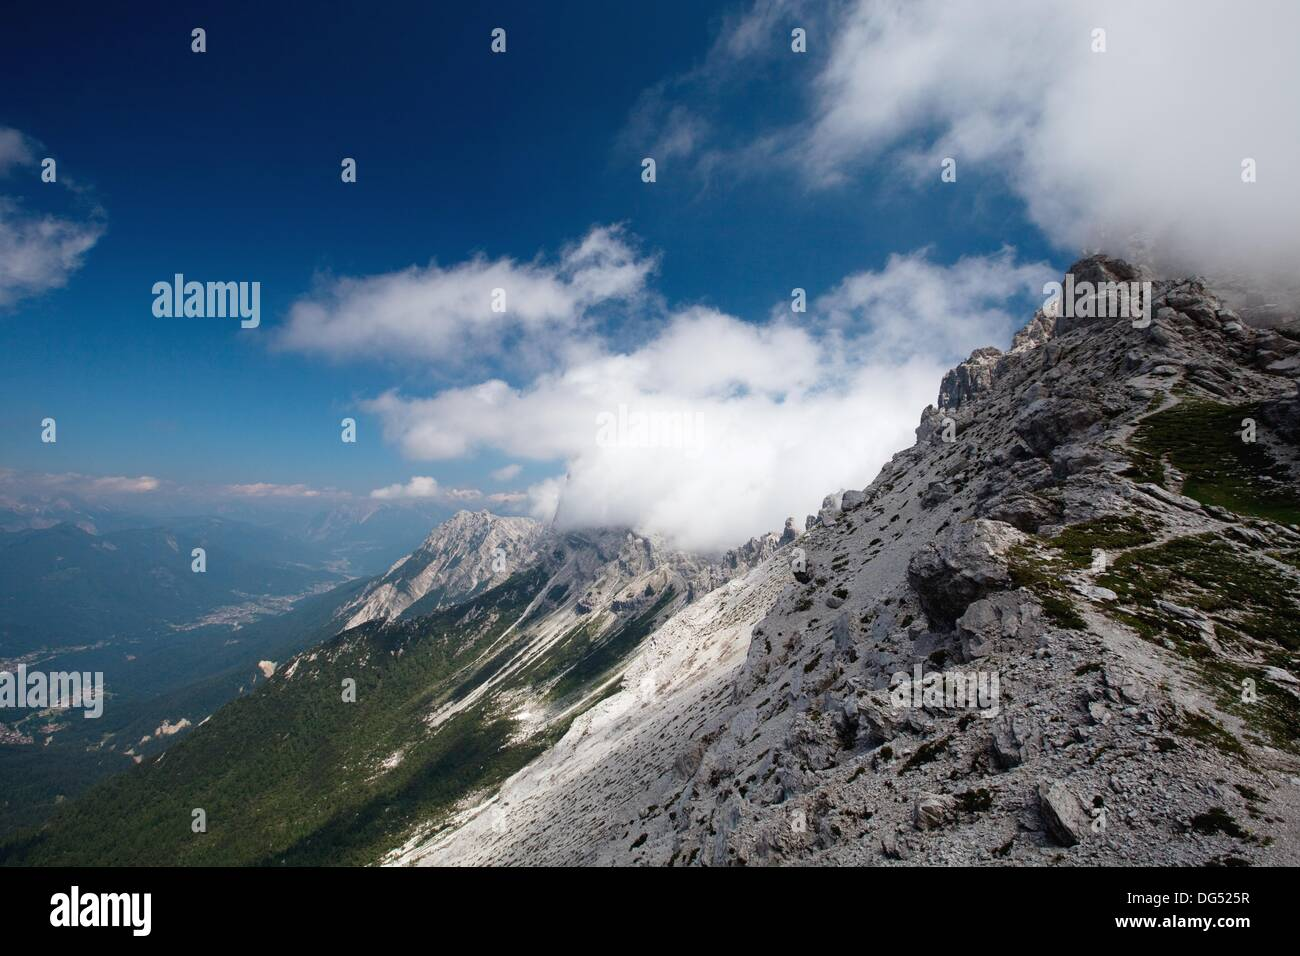 Panoramic view during the ascent of Sfornioi nord peak in the Belluno Dolomites, Unesco world natural heritage site, - Stock Image